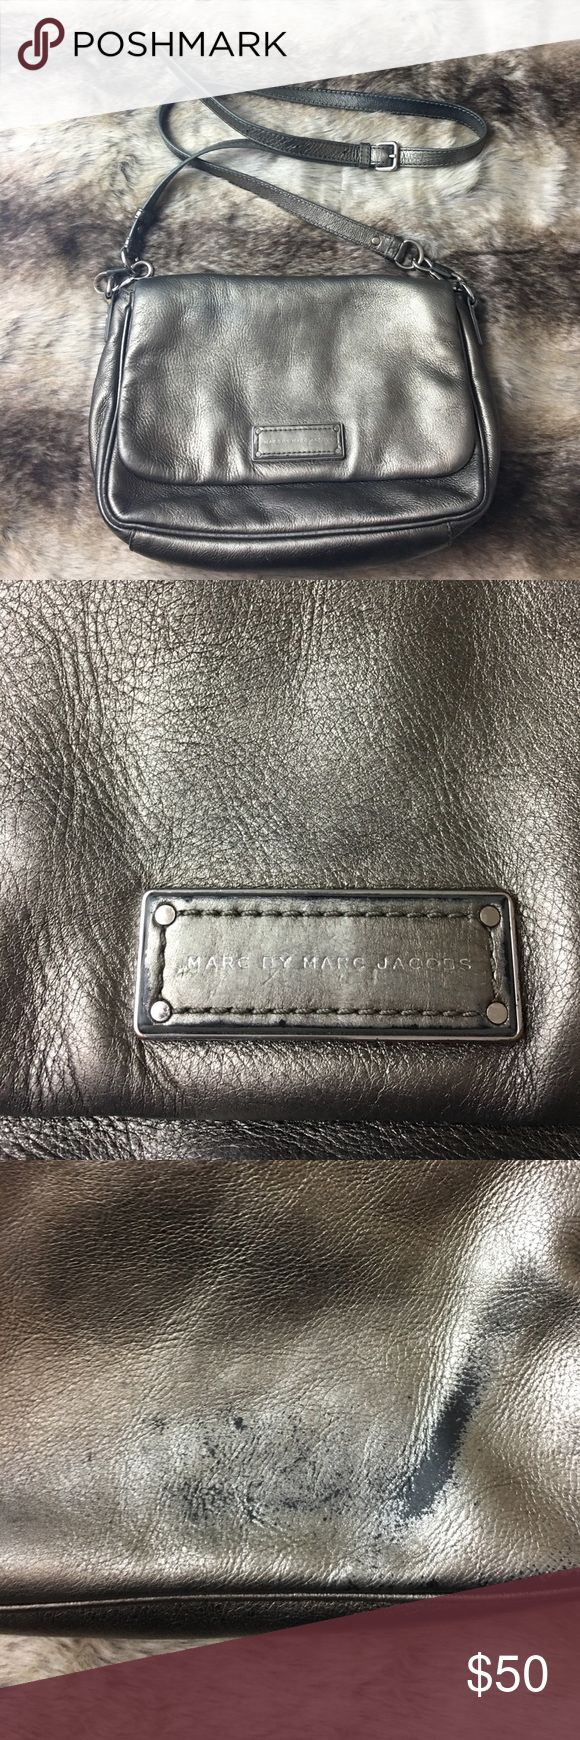 💜SALE💜 Marc by Marc Jacobs Cross Body The back of the bag has wear & discoloring, please see photographs. Marc by Marc Jacobs Bags Crossbody Bags